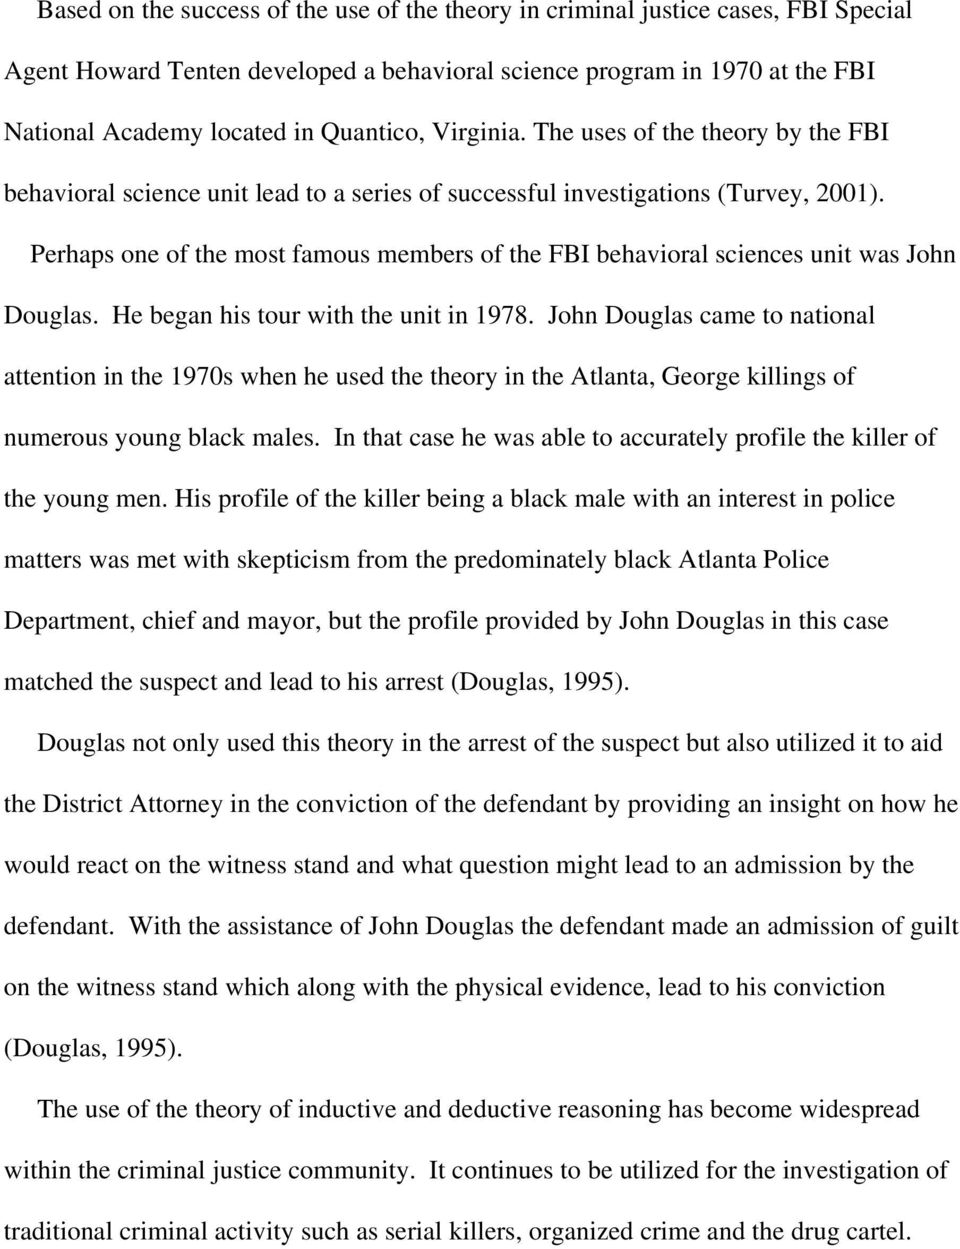 Perhaps one of the most famous members of the FBI behavioral sciences unit was John Douglas. He began his tour with the unit in 1978.